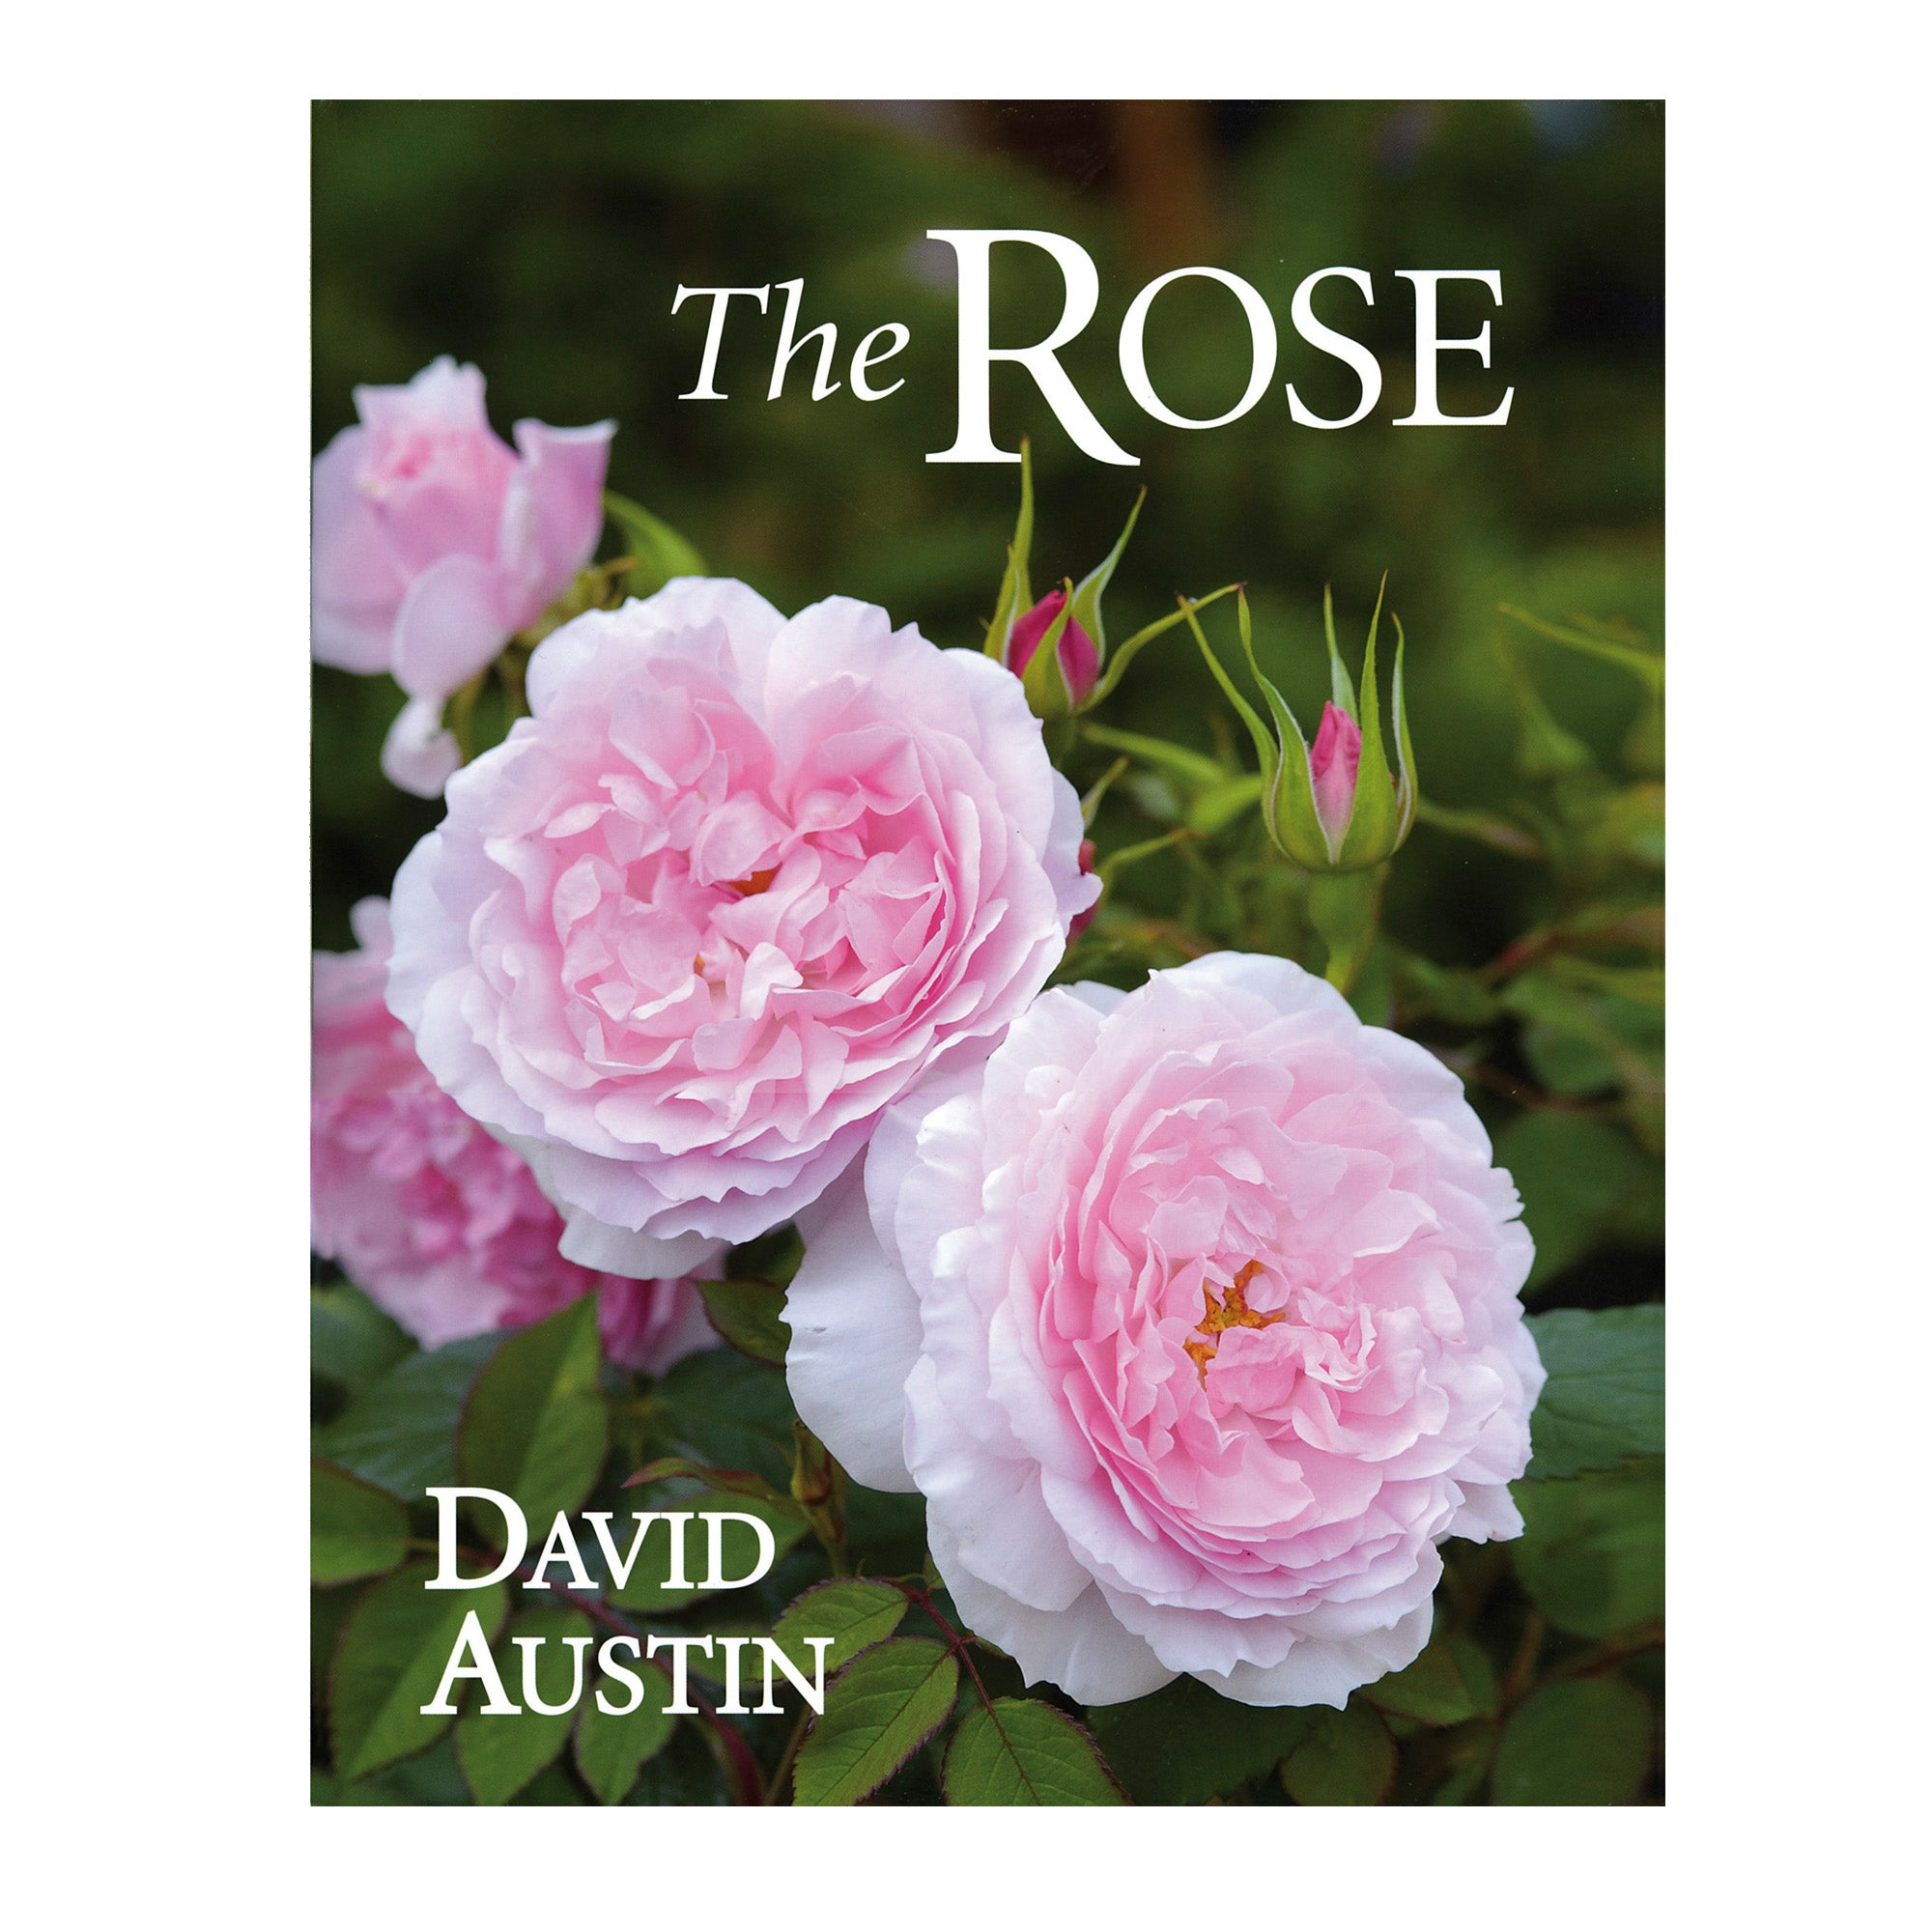 The Rose by David Austin